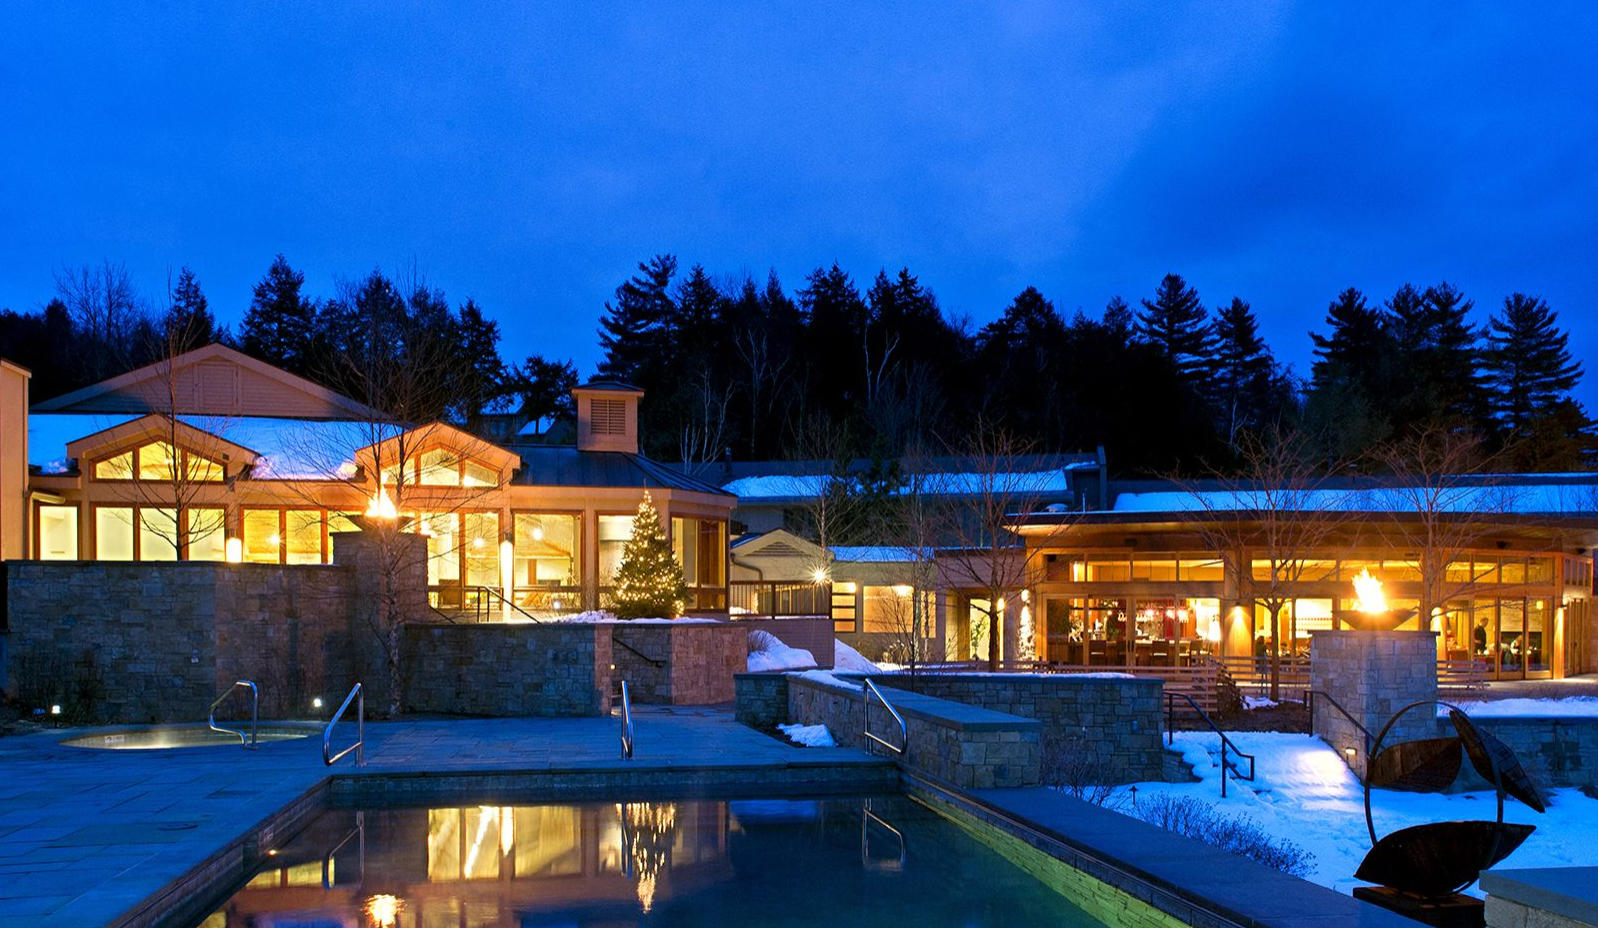 Topnotch Resort exterior on a wintry night.